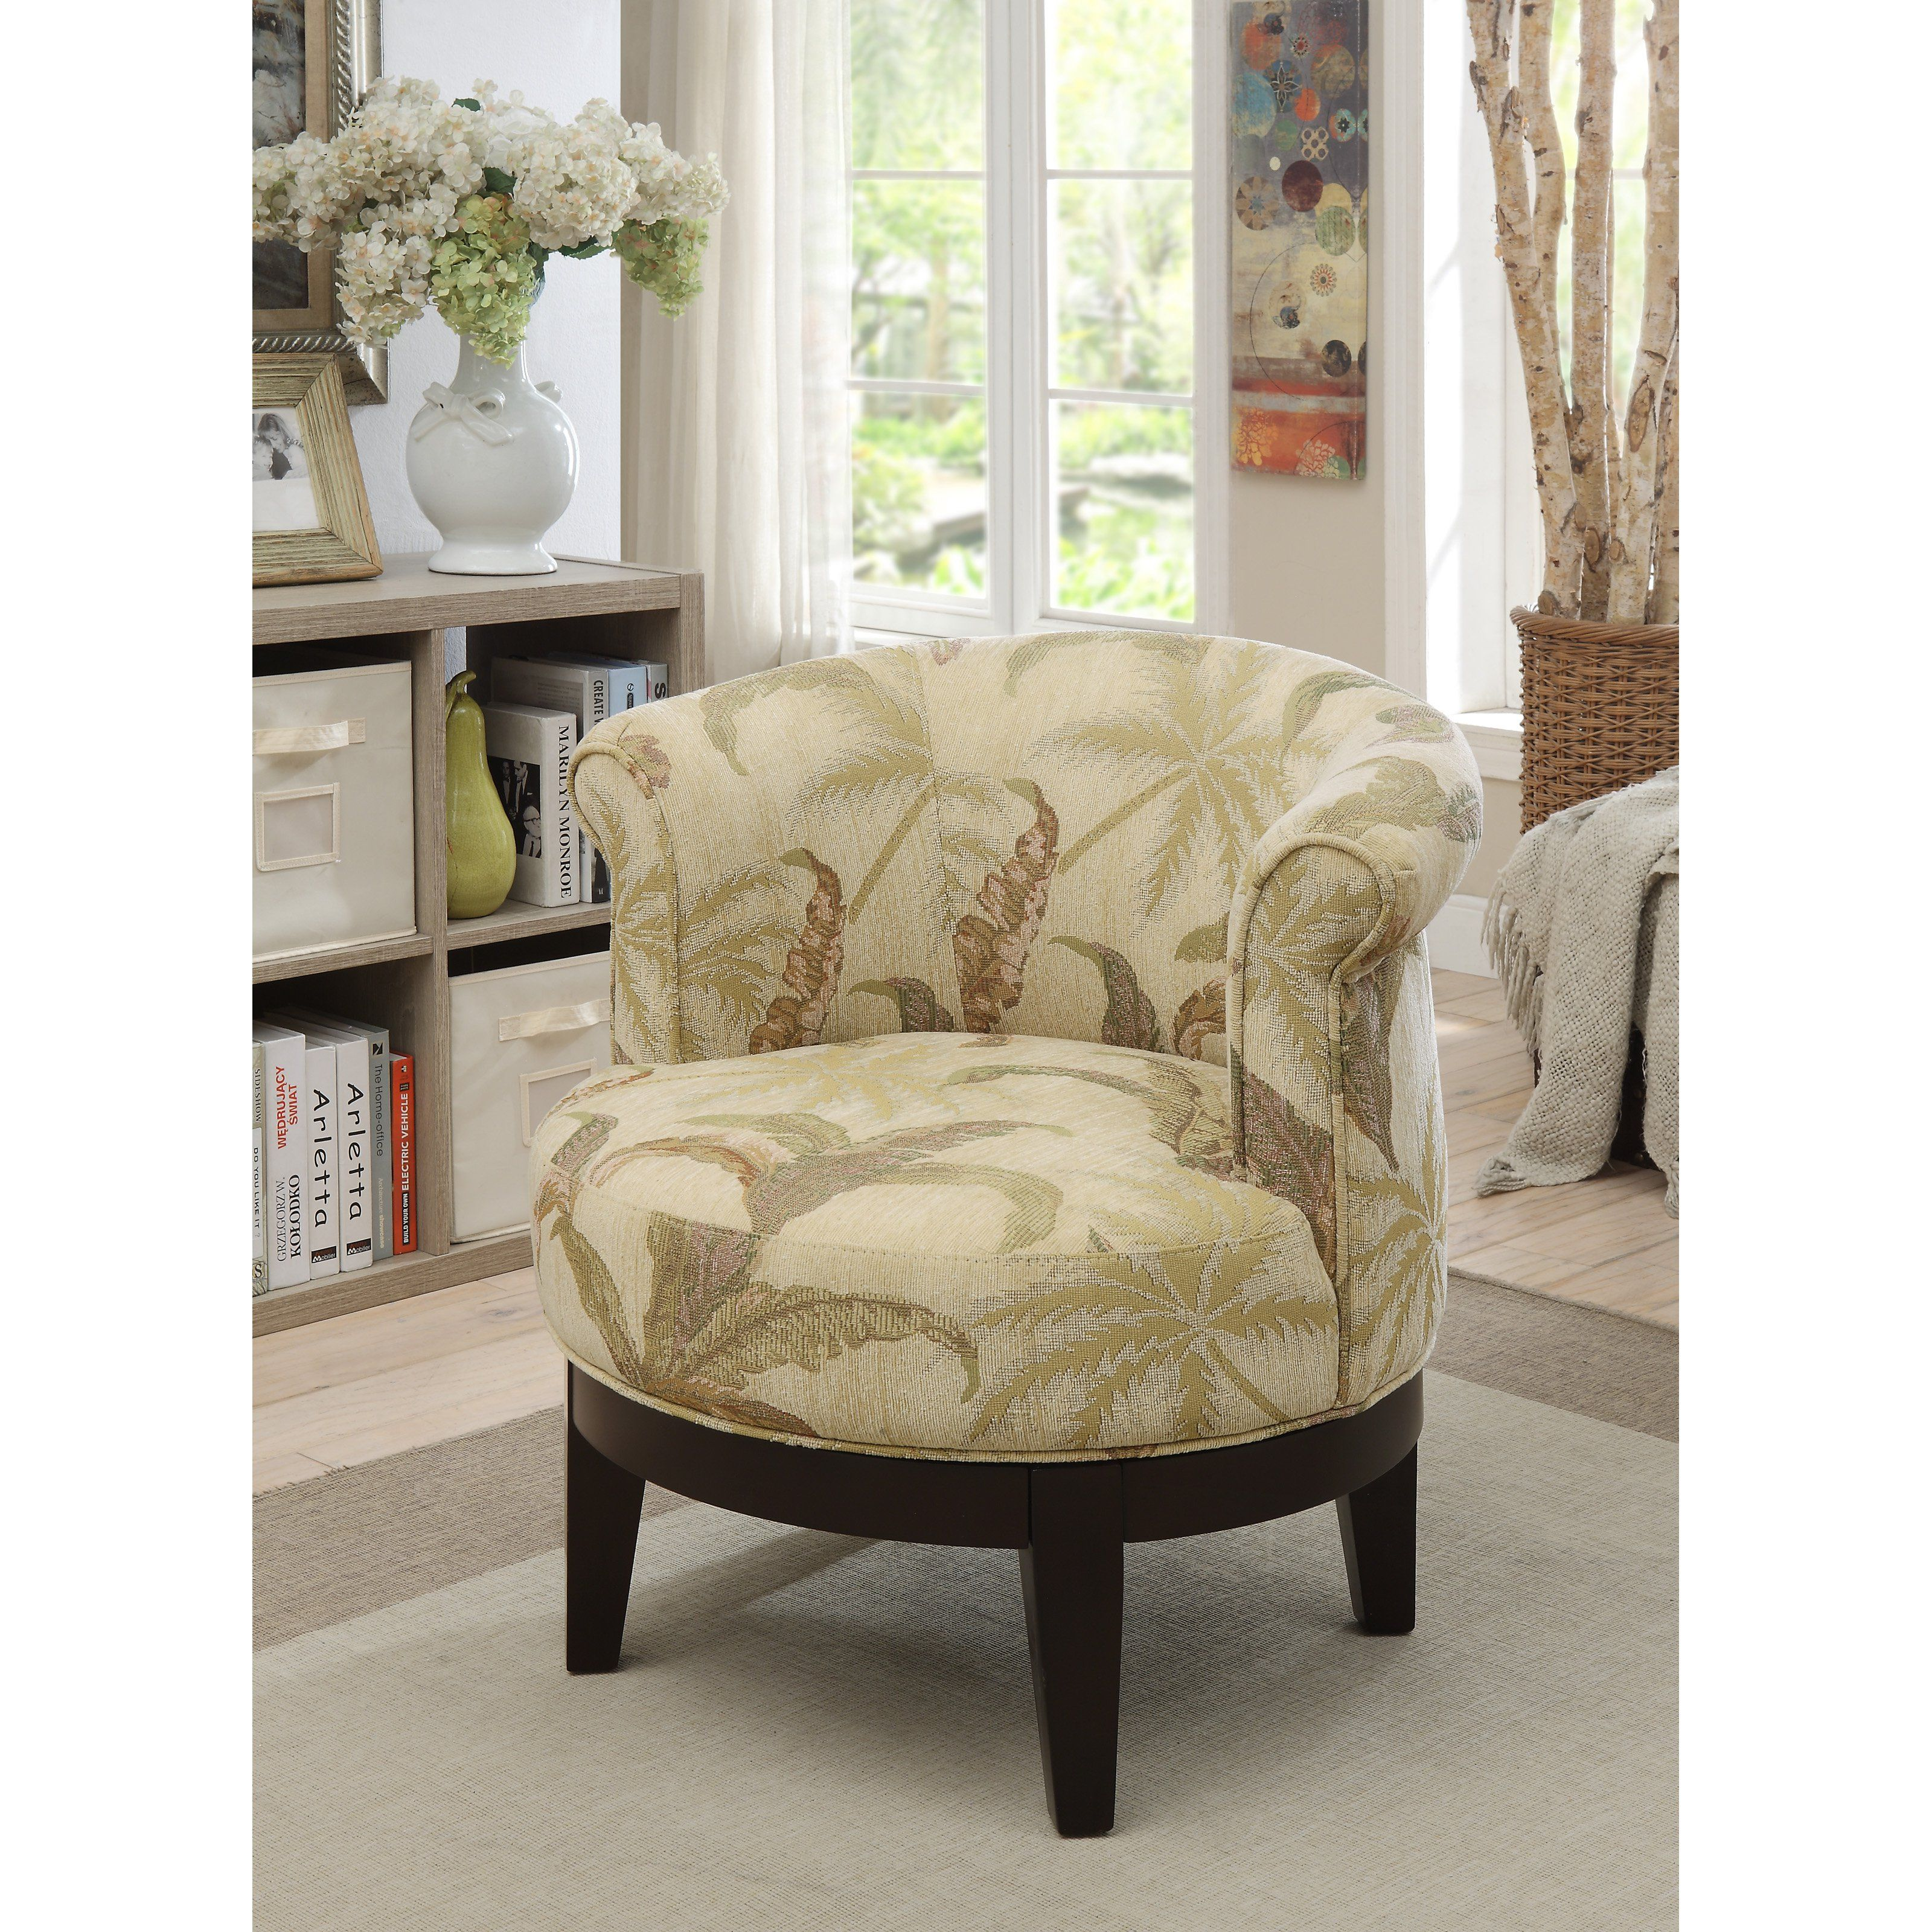 Coast to coast accent chair with swivel from hayneedle